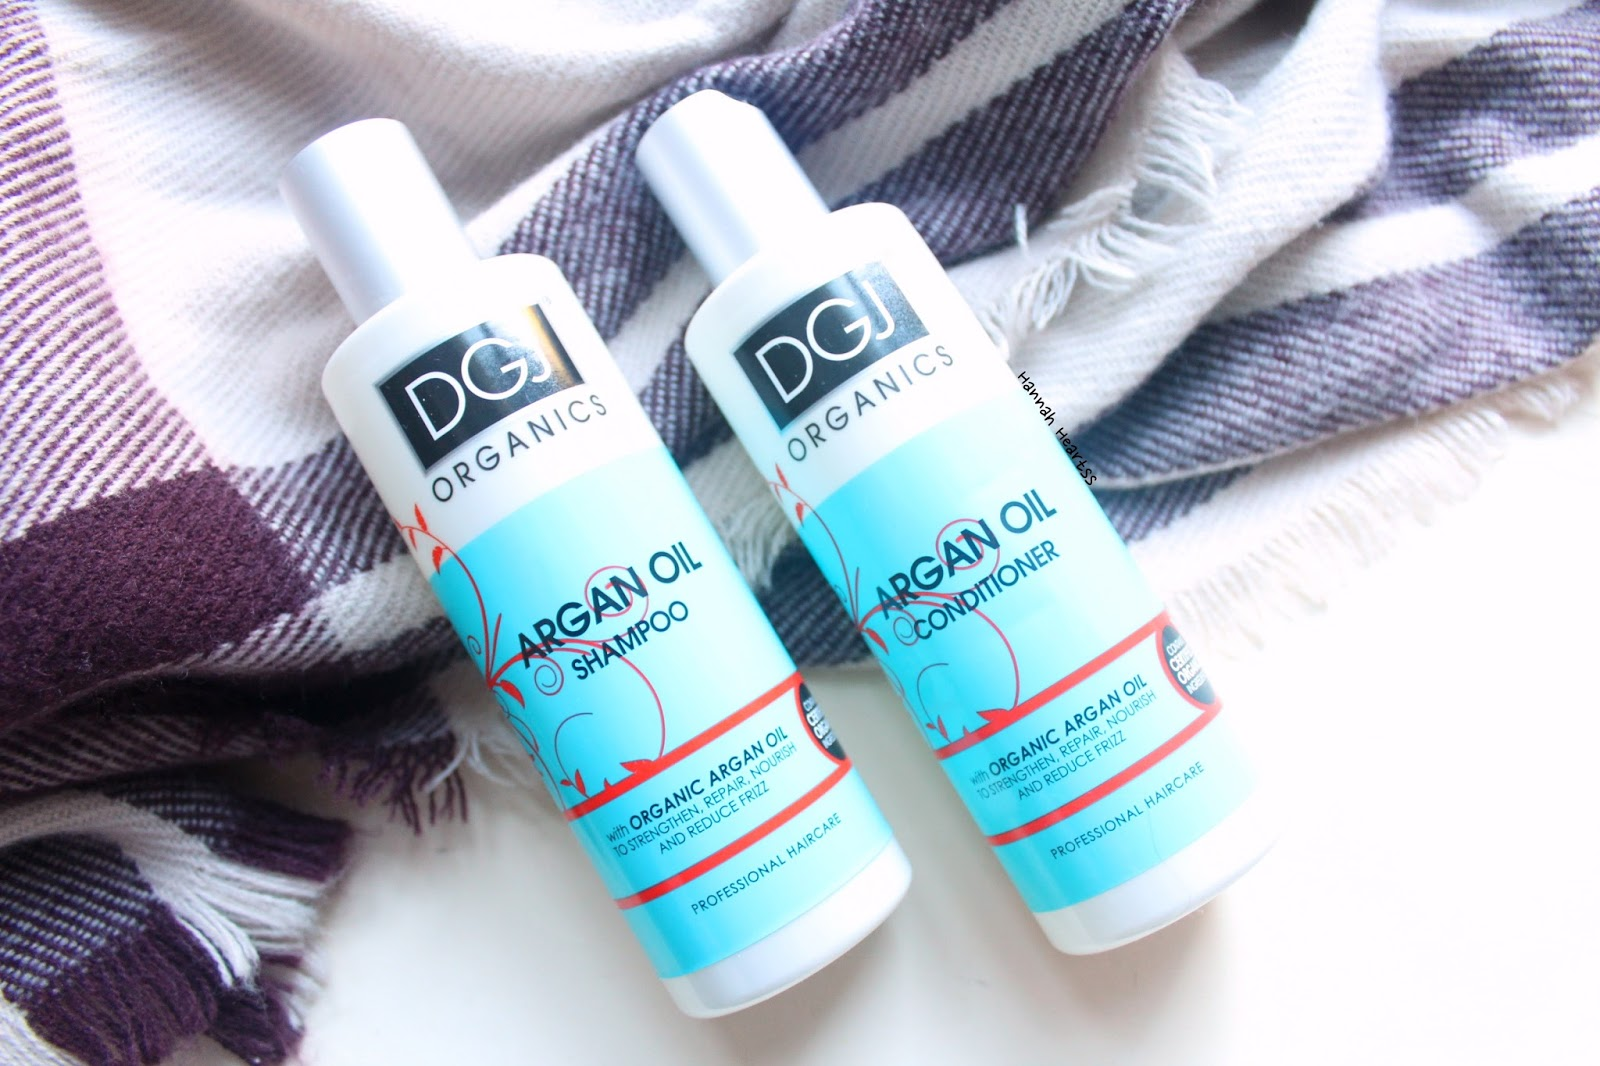 DGJ Organics Argan Oil Shampoo & Conditioner